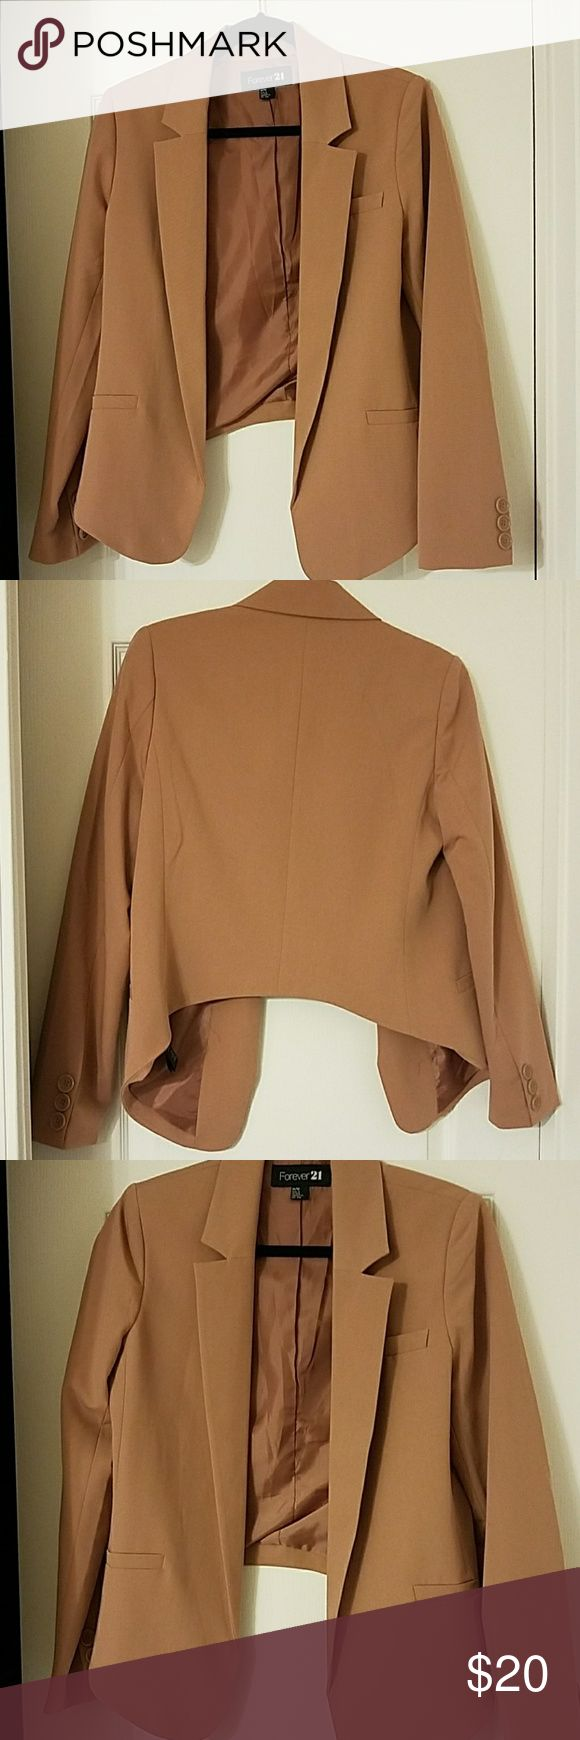 Peach blazer Perfect condition peach blazer or can pass as rust . It's longer in the front and shorter in the back. Perfect for any occasion. Forever 21 Jackets & Coats Blazers